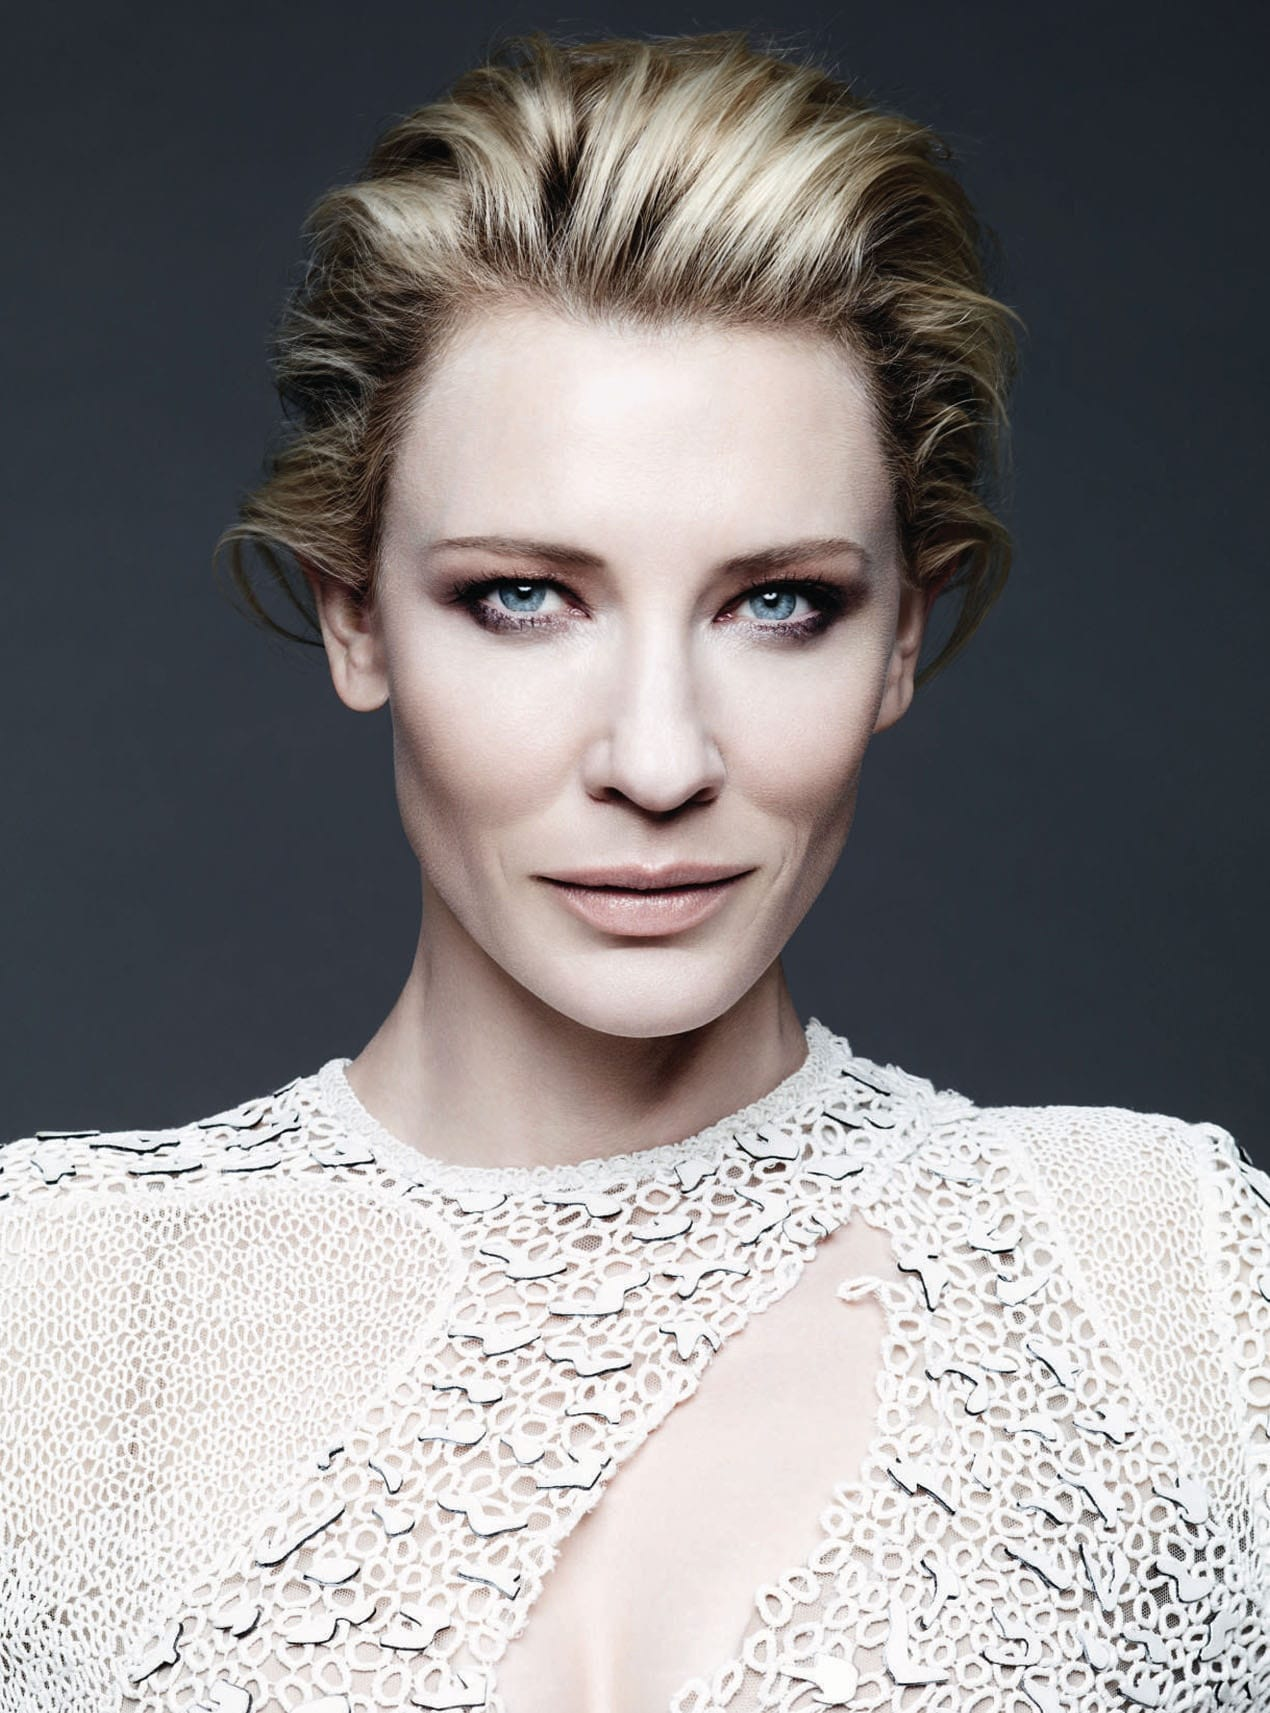 Cate Blanchett For mobile